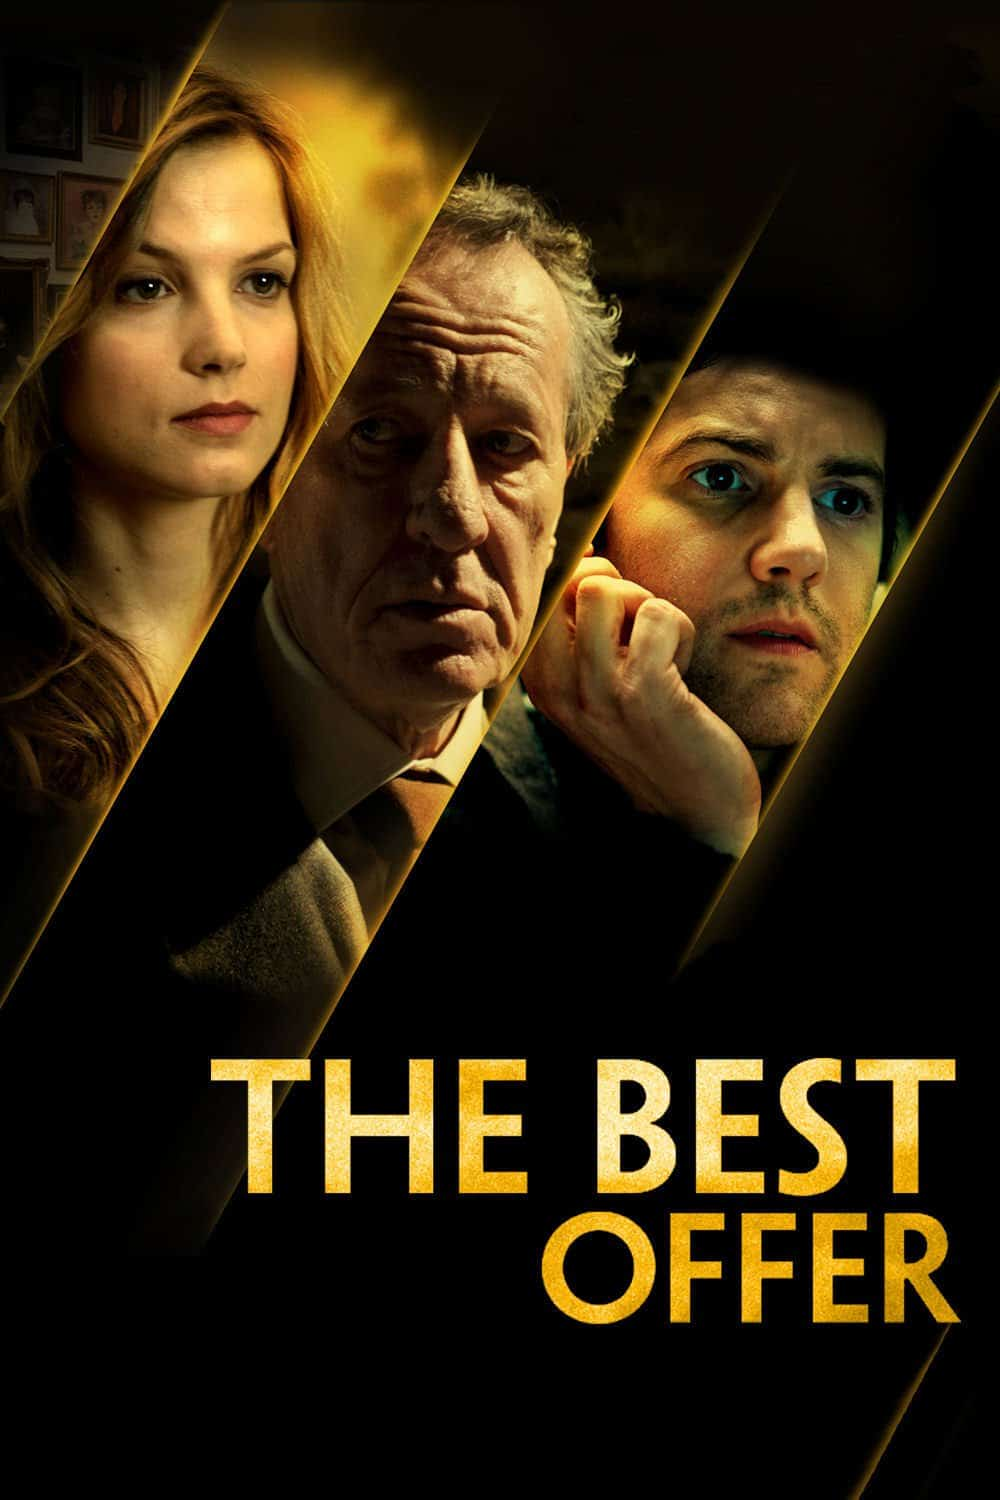 The Best Offer, 2013